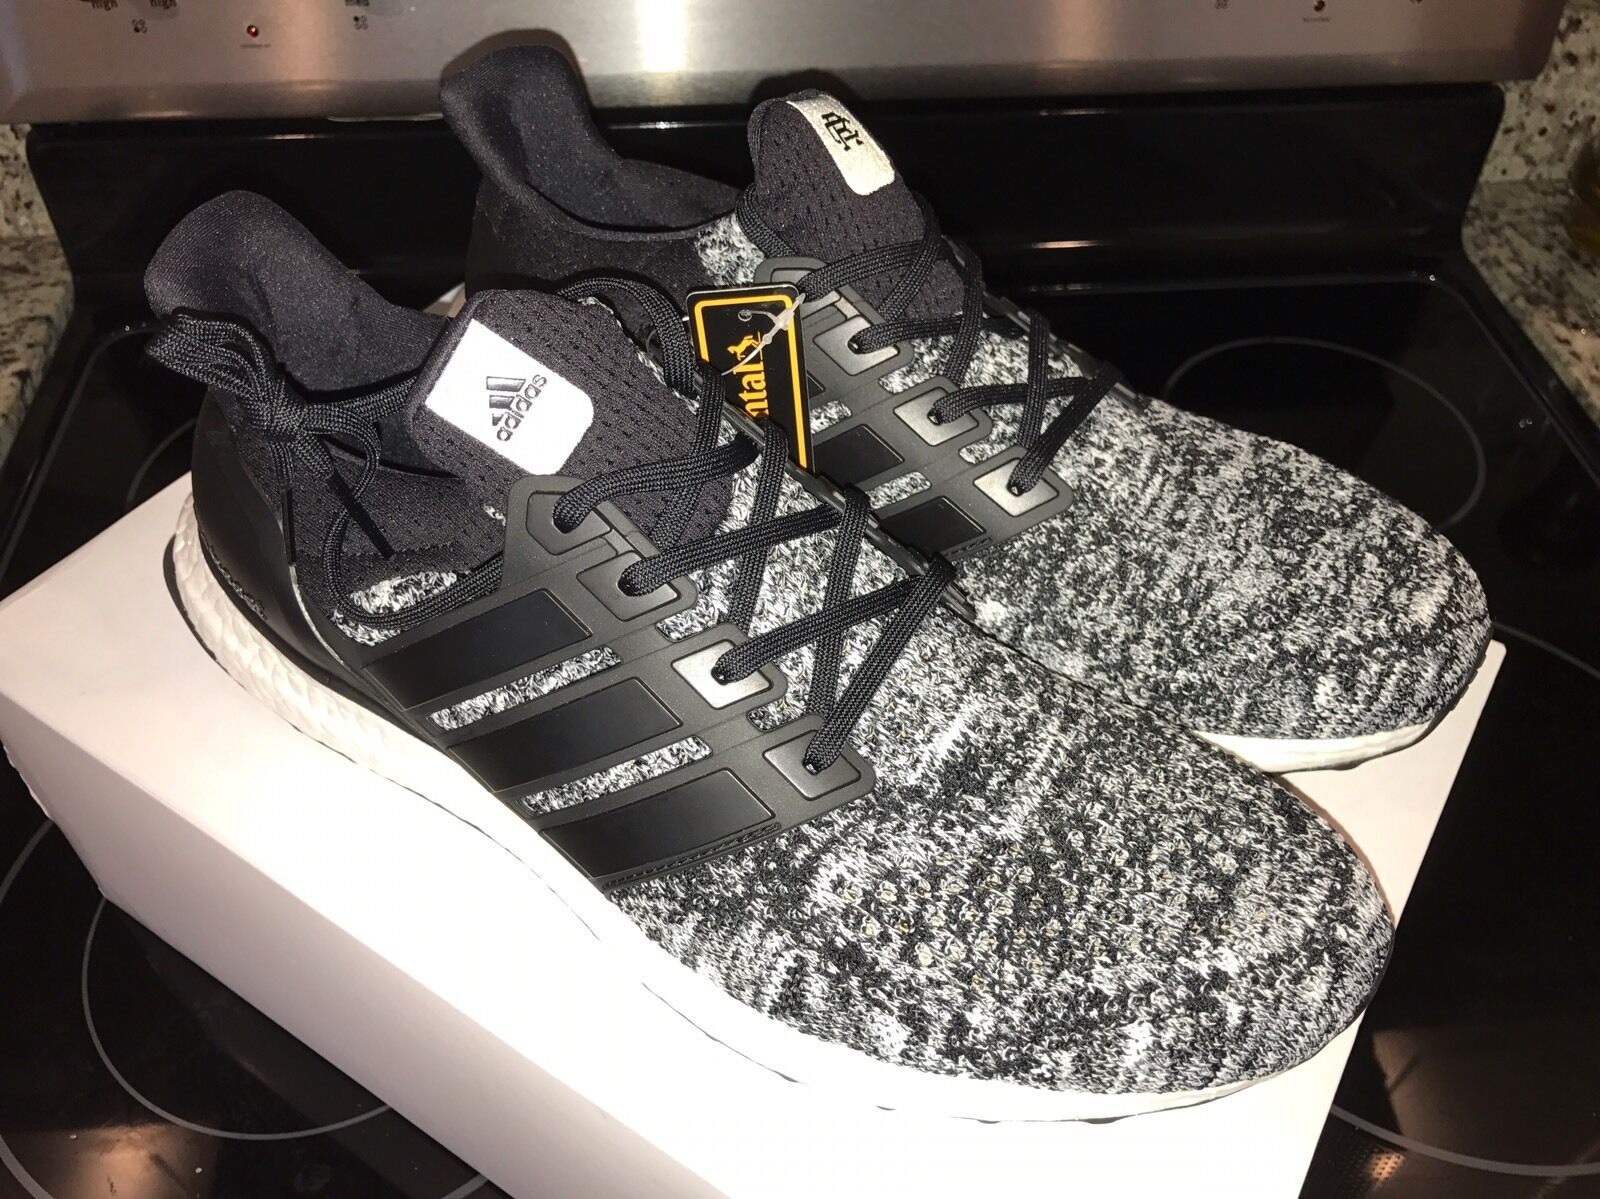 Adidas x Reigning Champ Ultra Boost Size 12